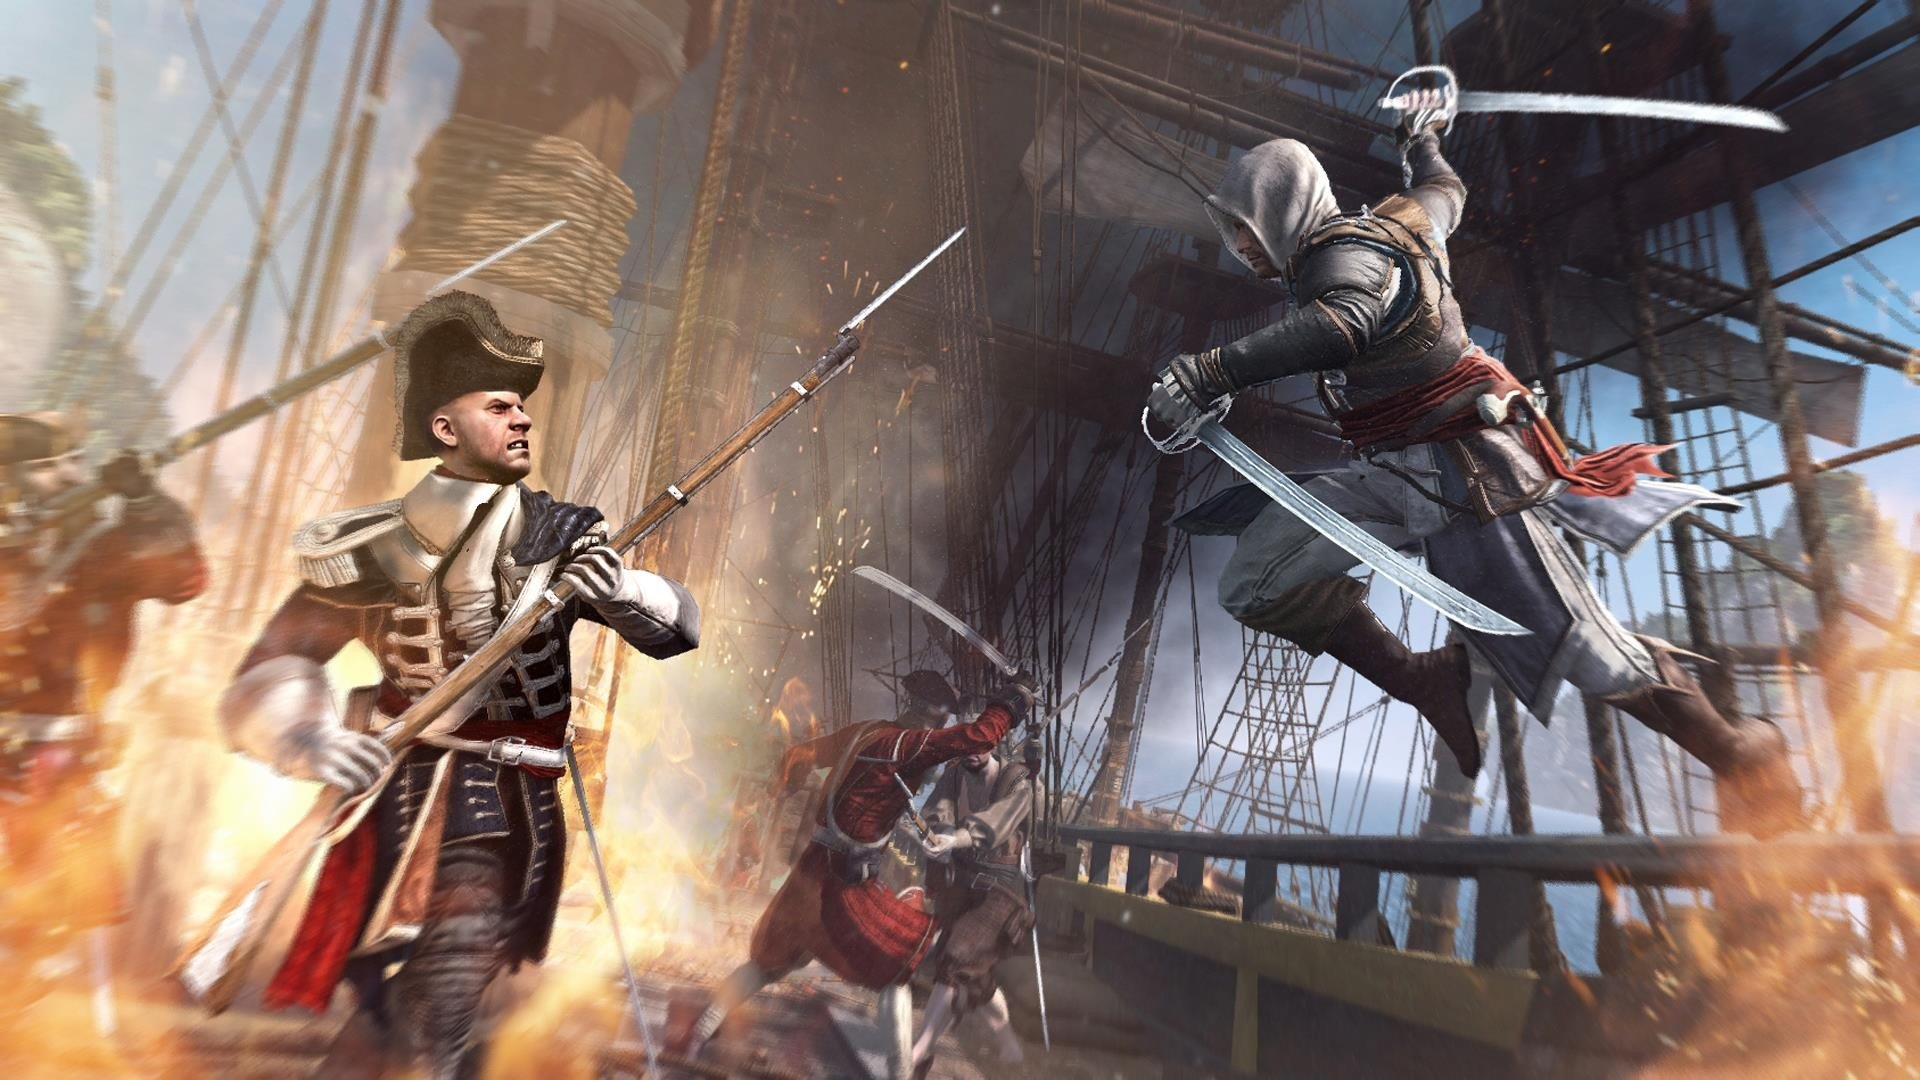 Awesome Assassin's Creed 4: Black Flag free wallpaper ID:234623 for 1080p PC